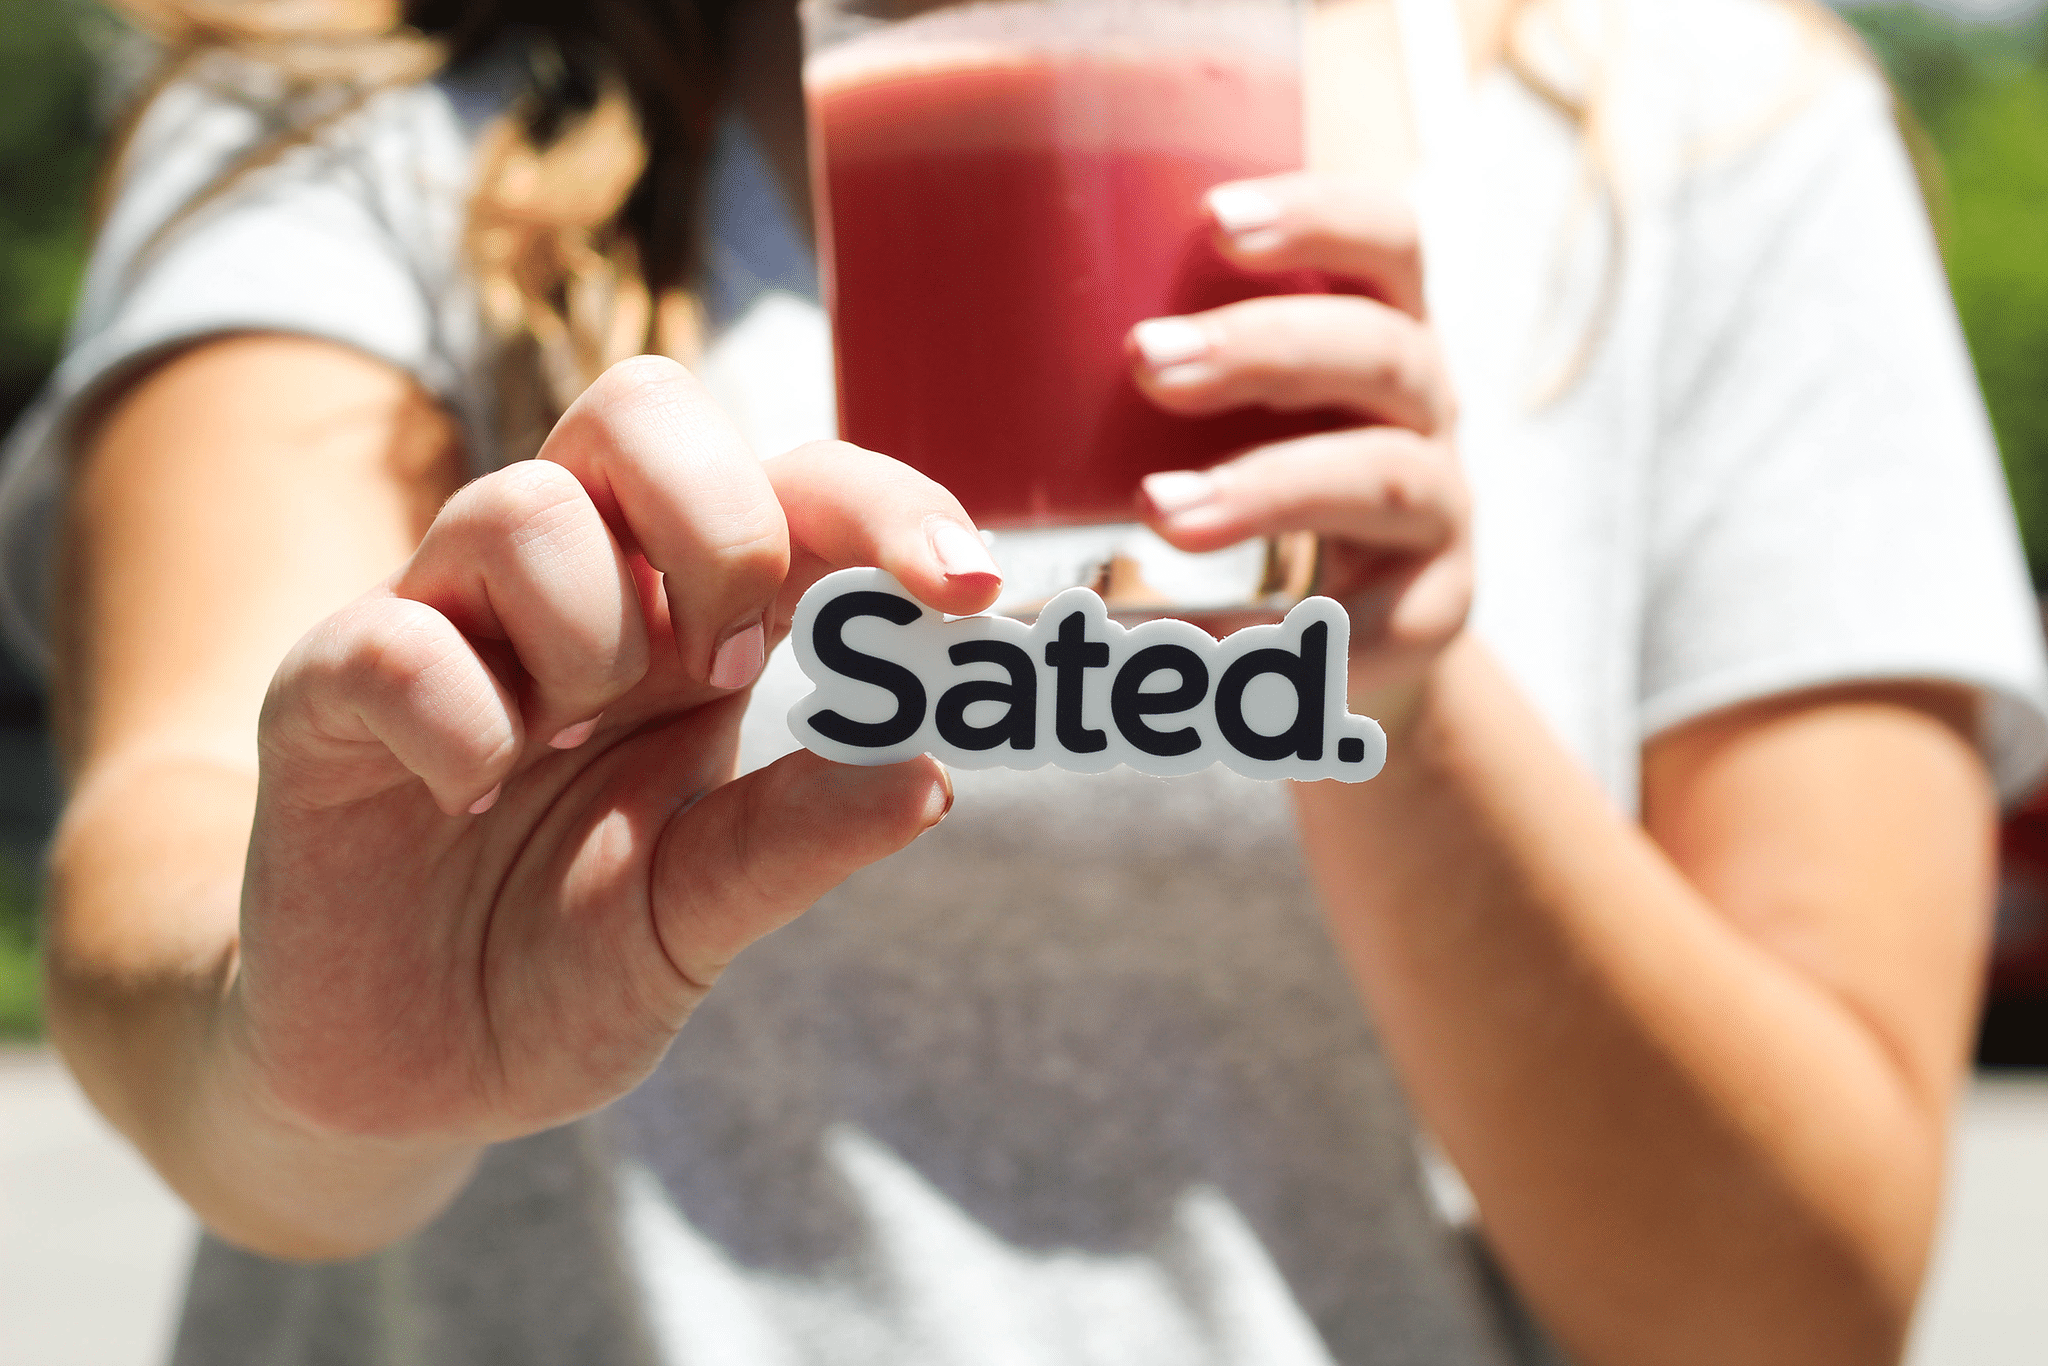 Ketolent Changes Name to Sated